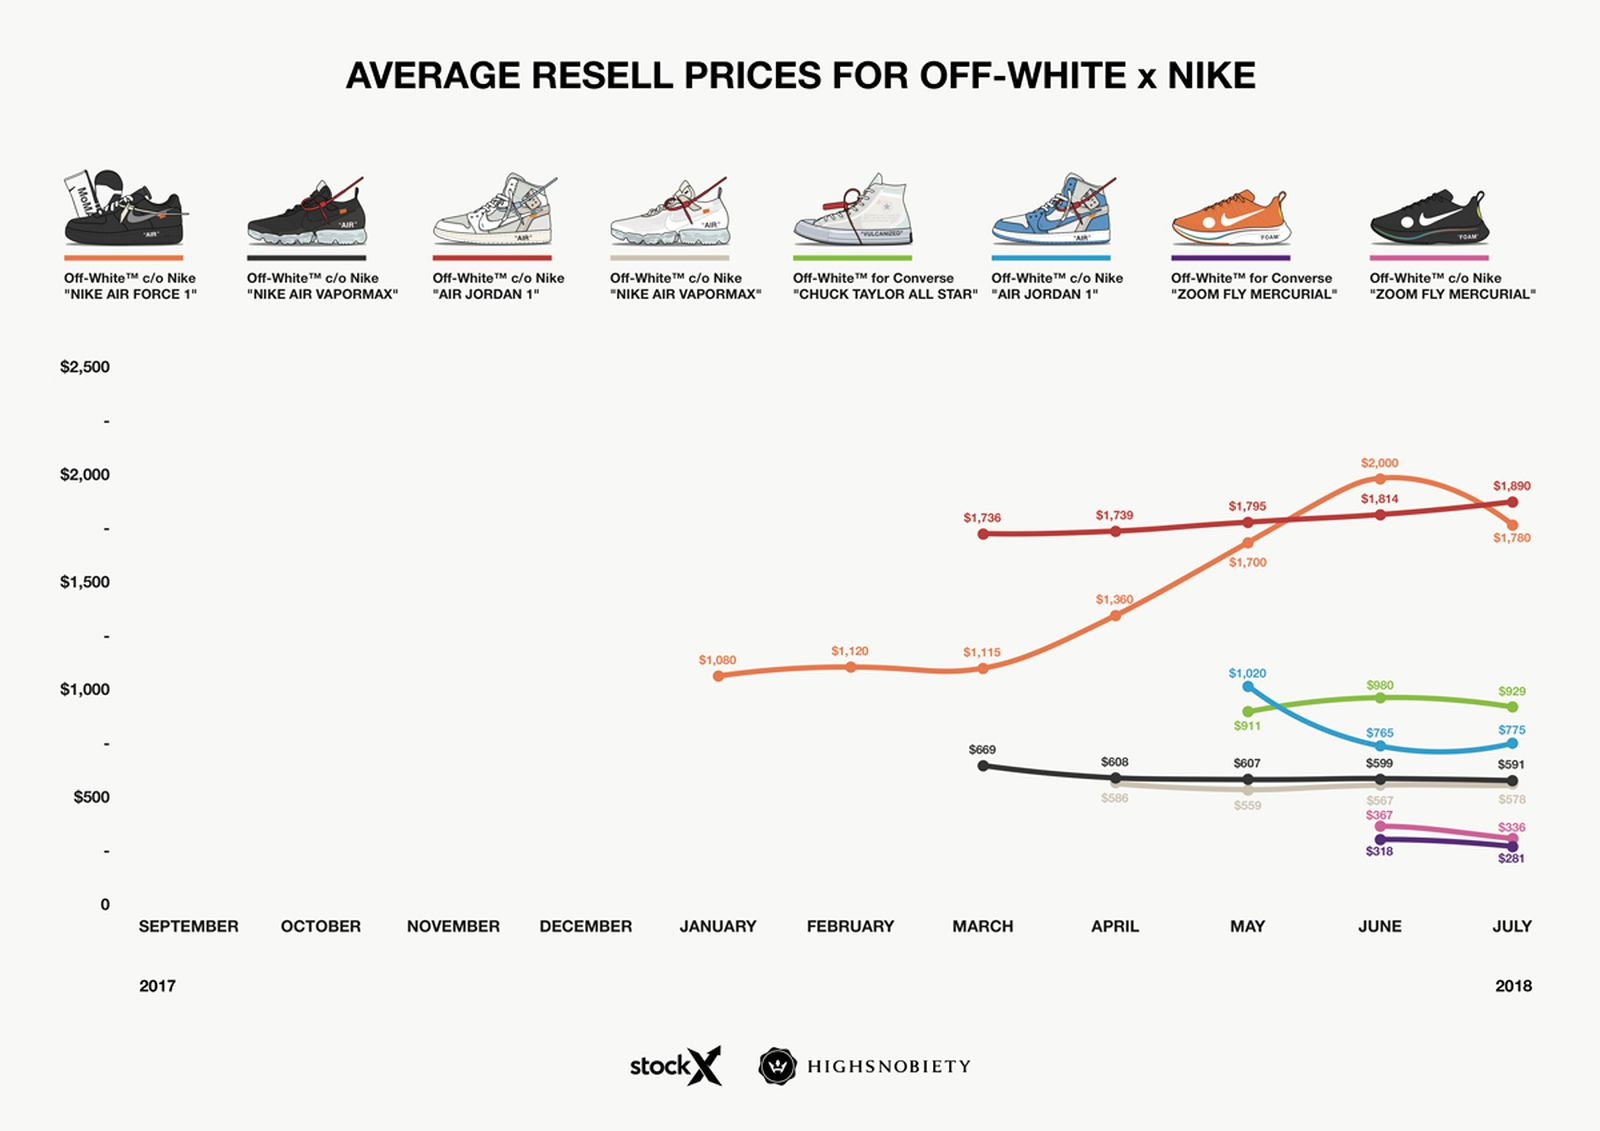 off white nike resell price analysis 2018 OFF-WHITE c/o Virgil Abloh